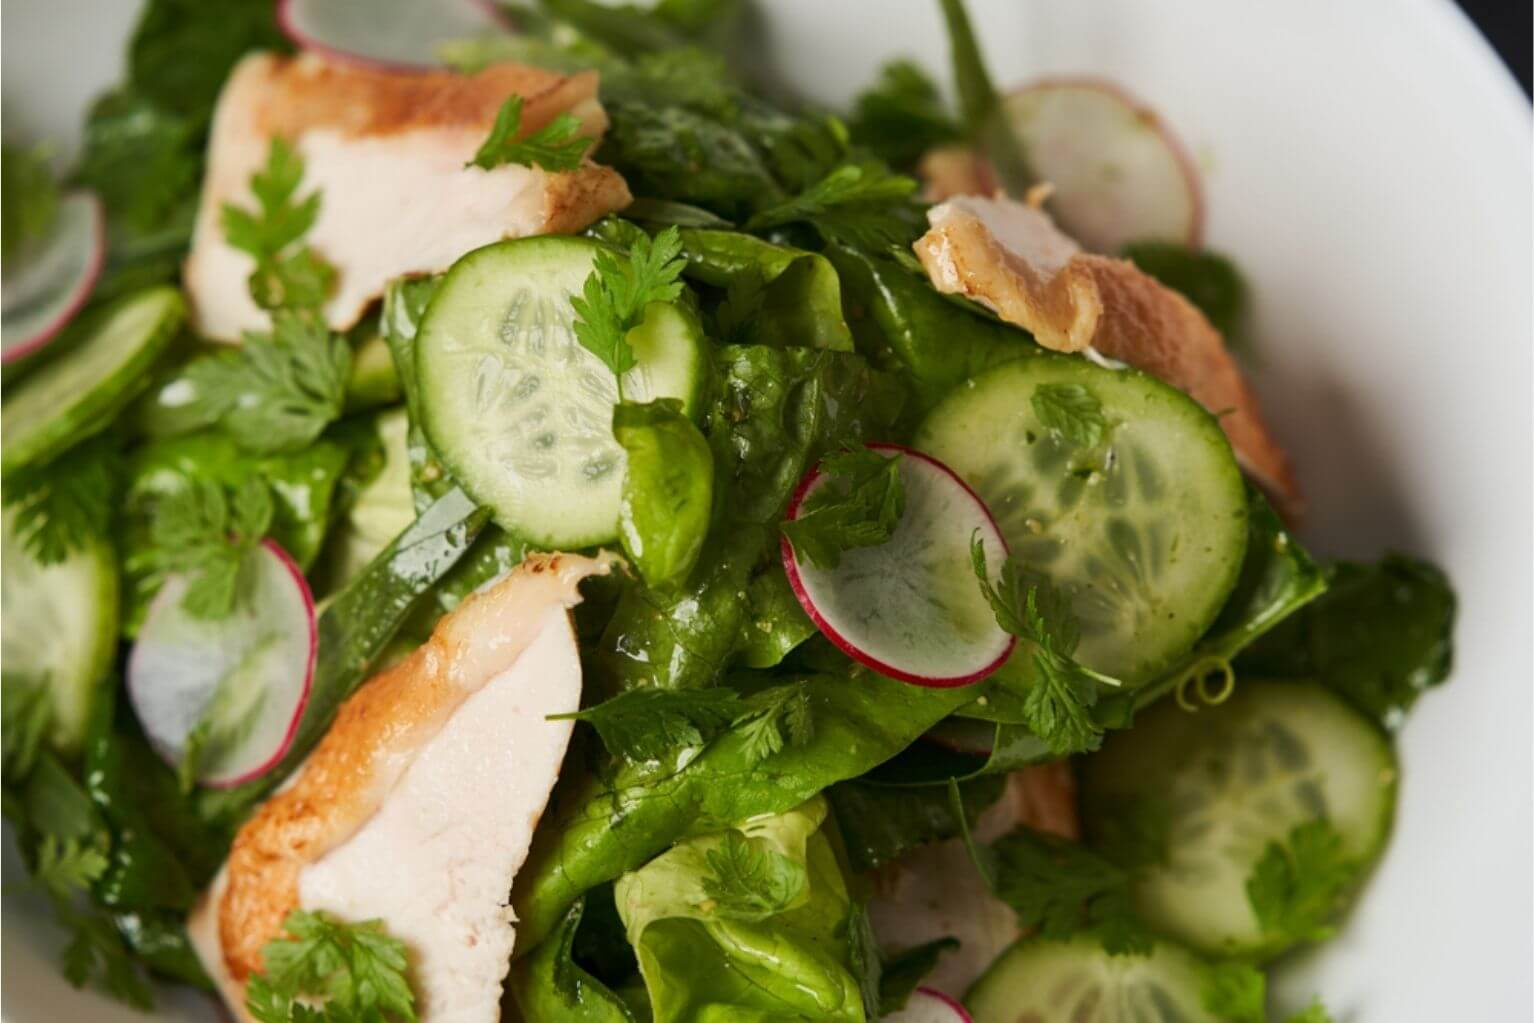 Fresh salad with romaine lettuce, cucumber, radish chicken, and herbs.